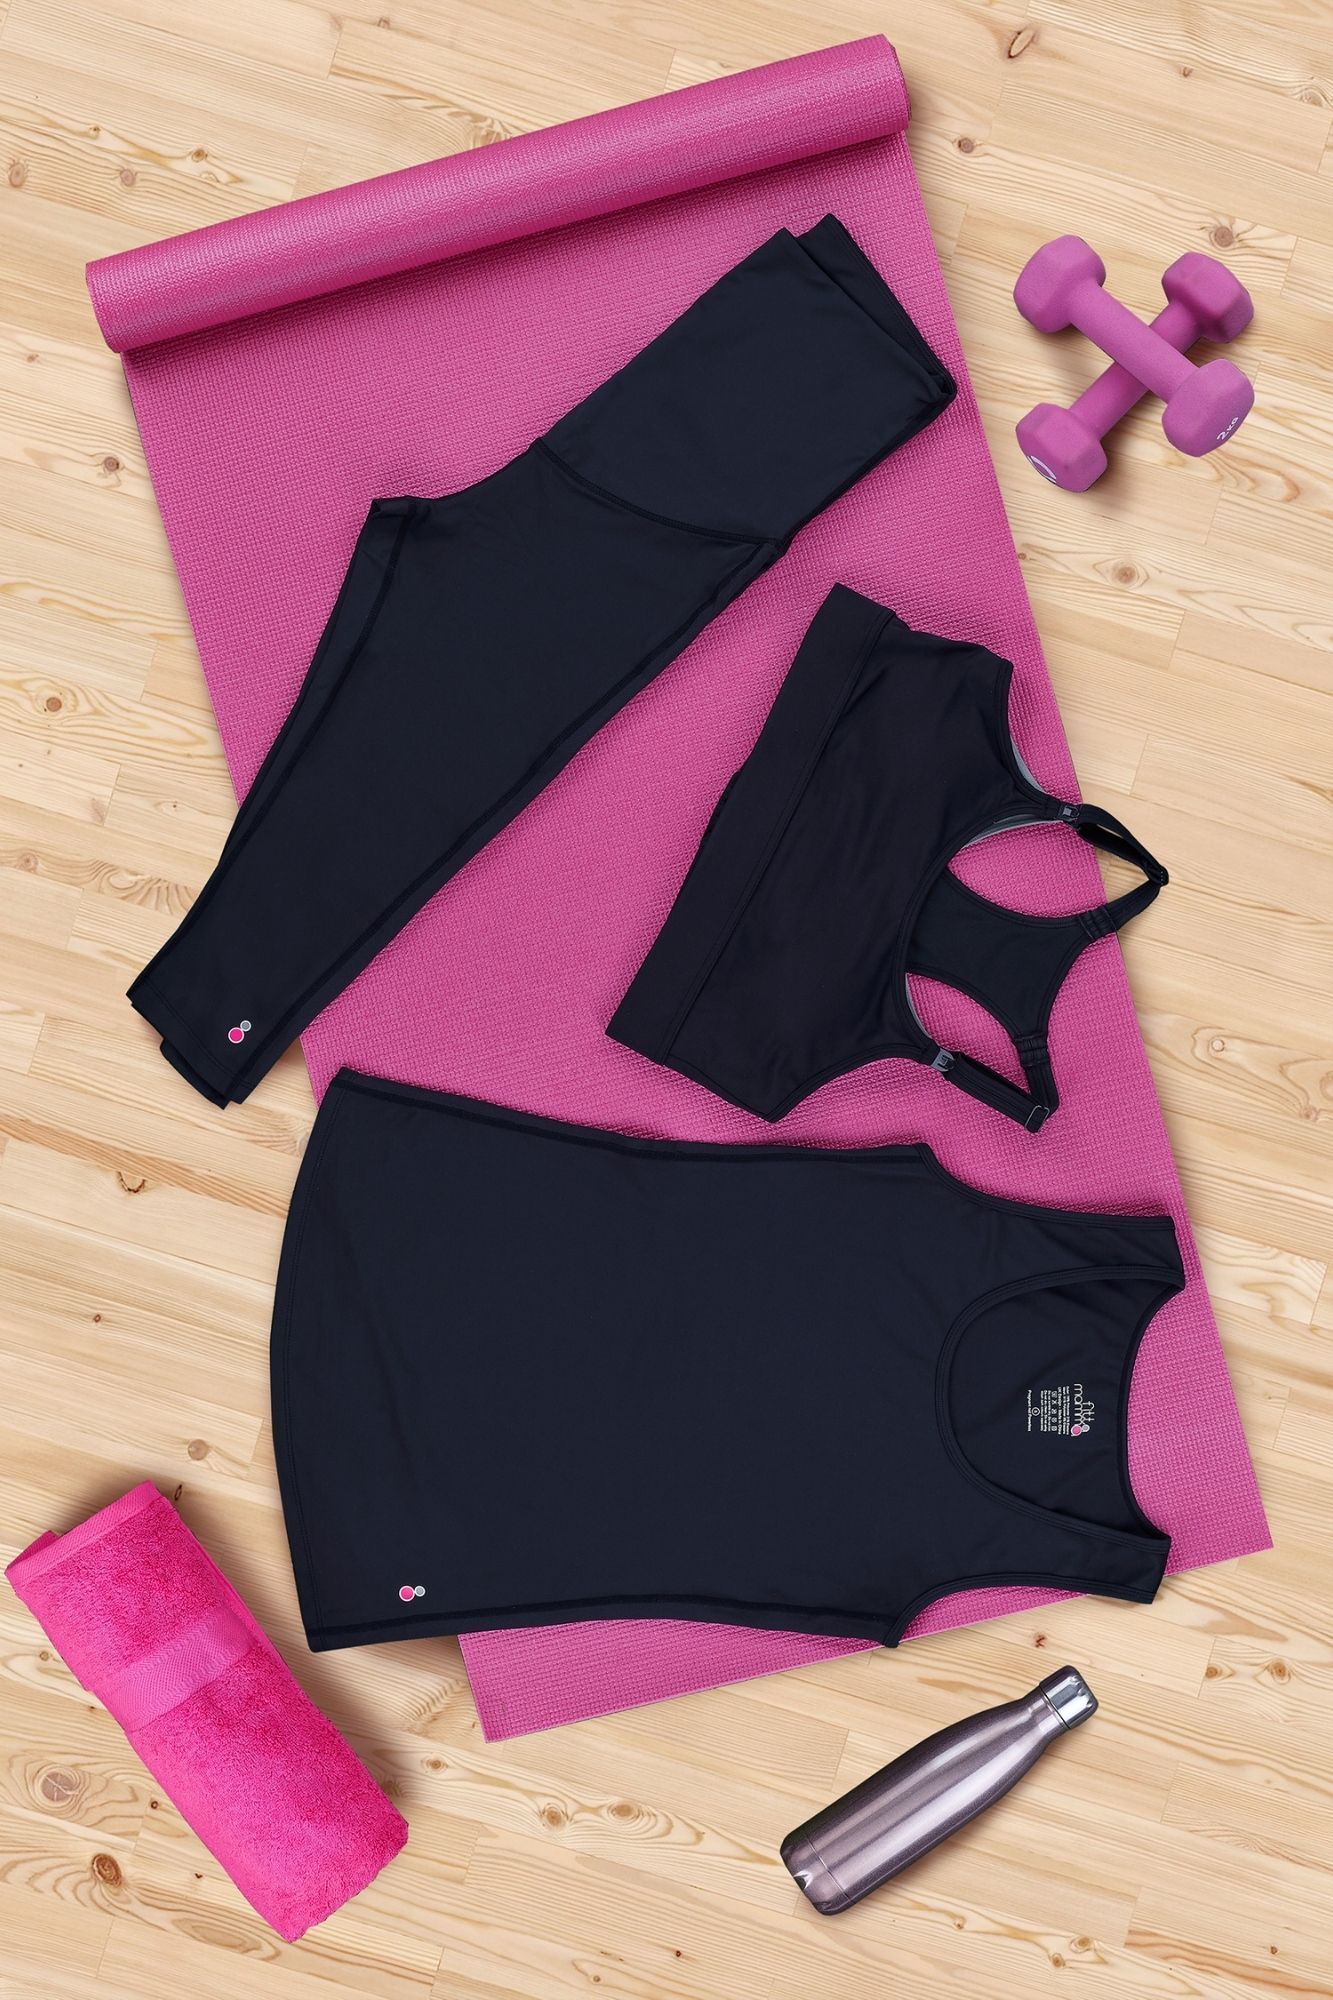 Made To Move Maternity Activewear Kit: 3/4 Leggings